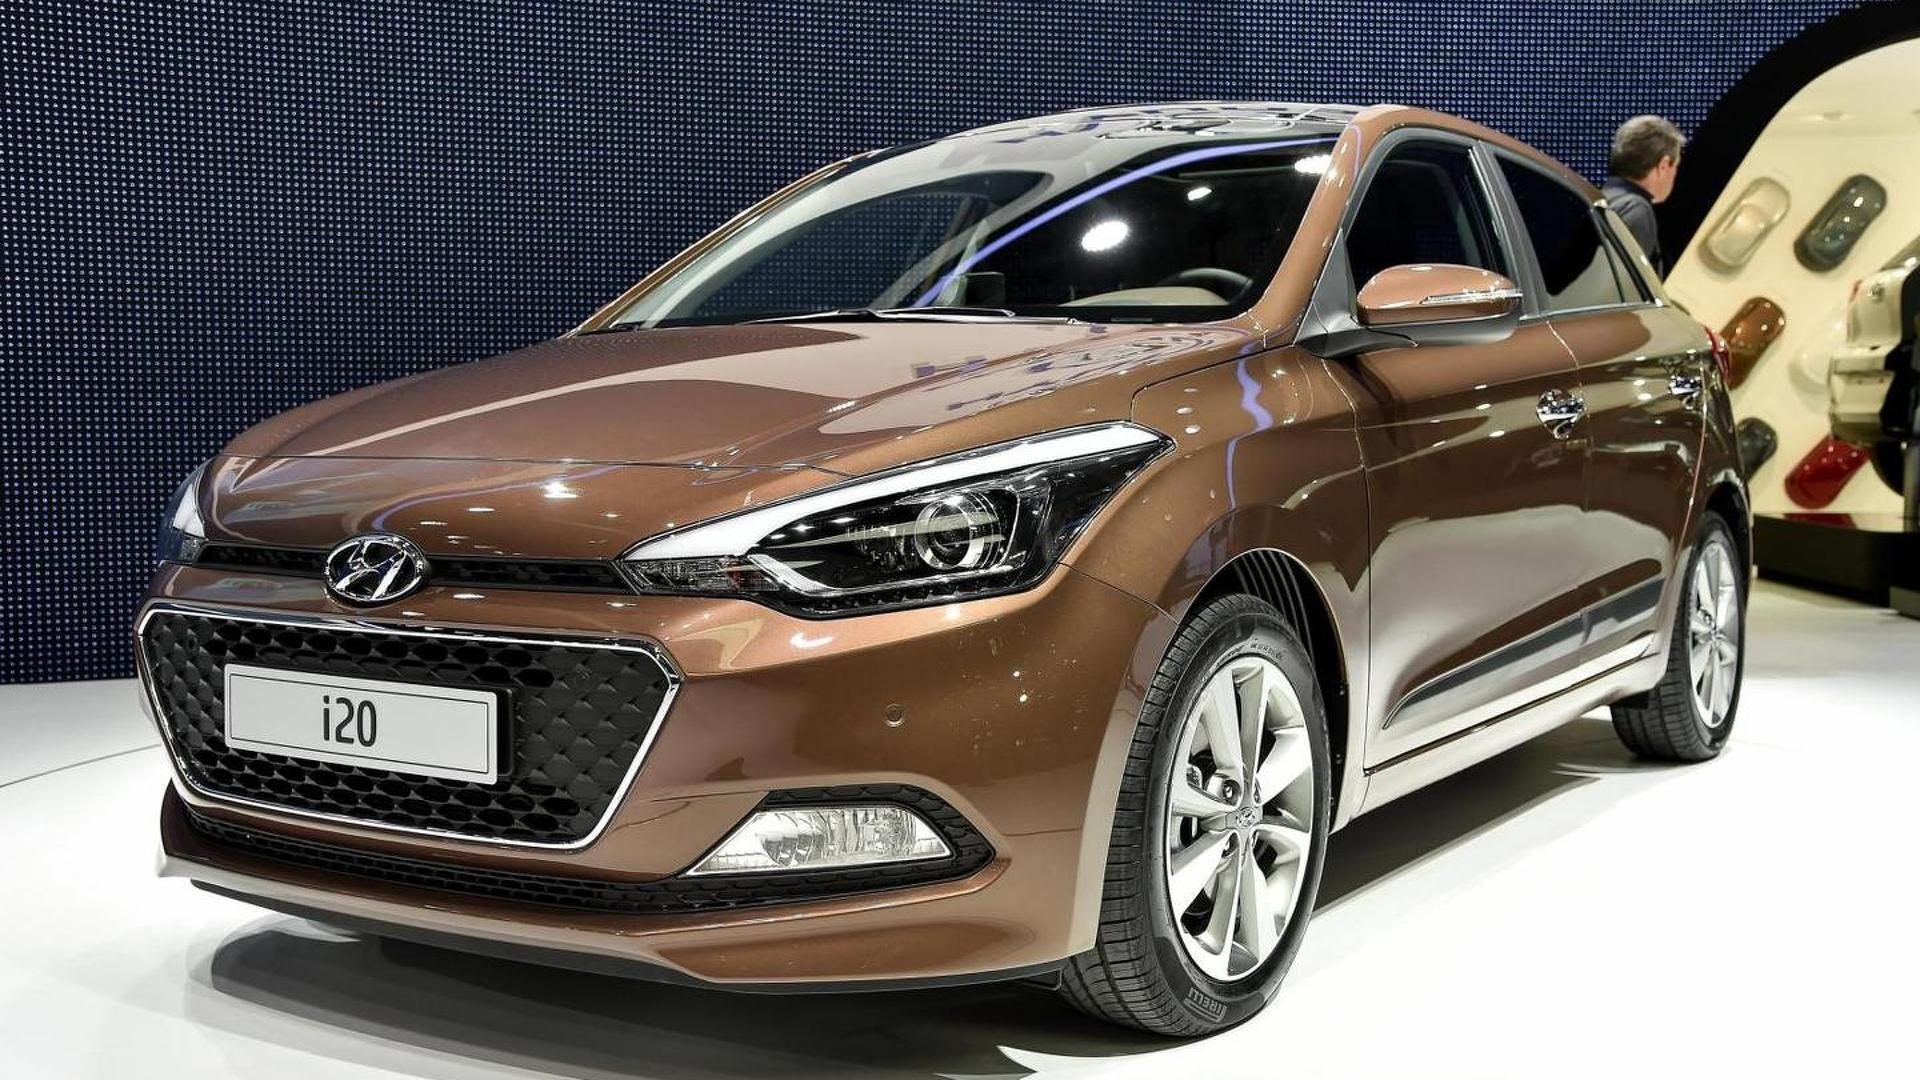 Hyundai i20 wagon considered among other body styles